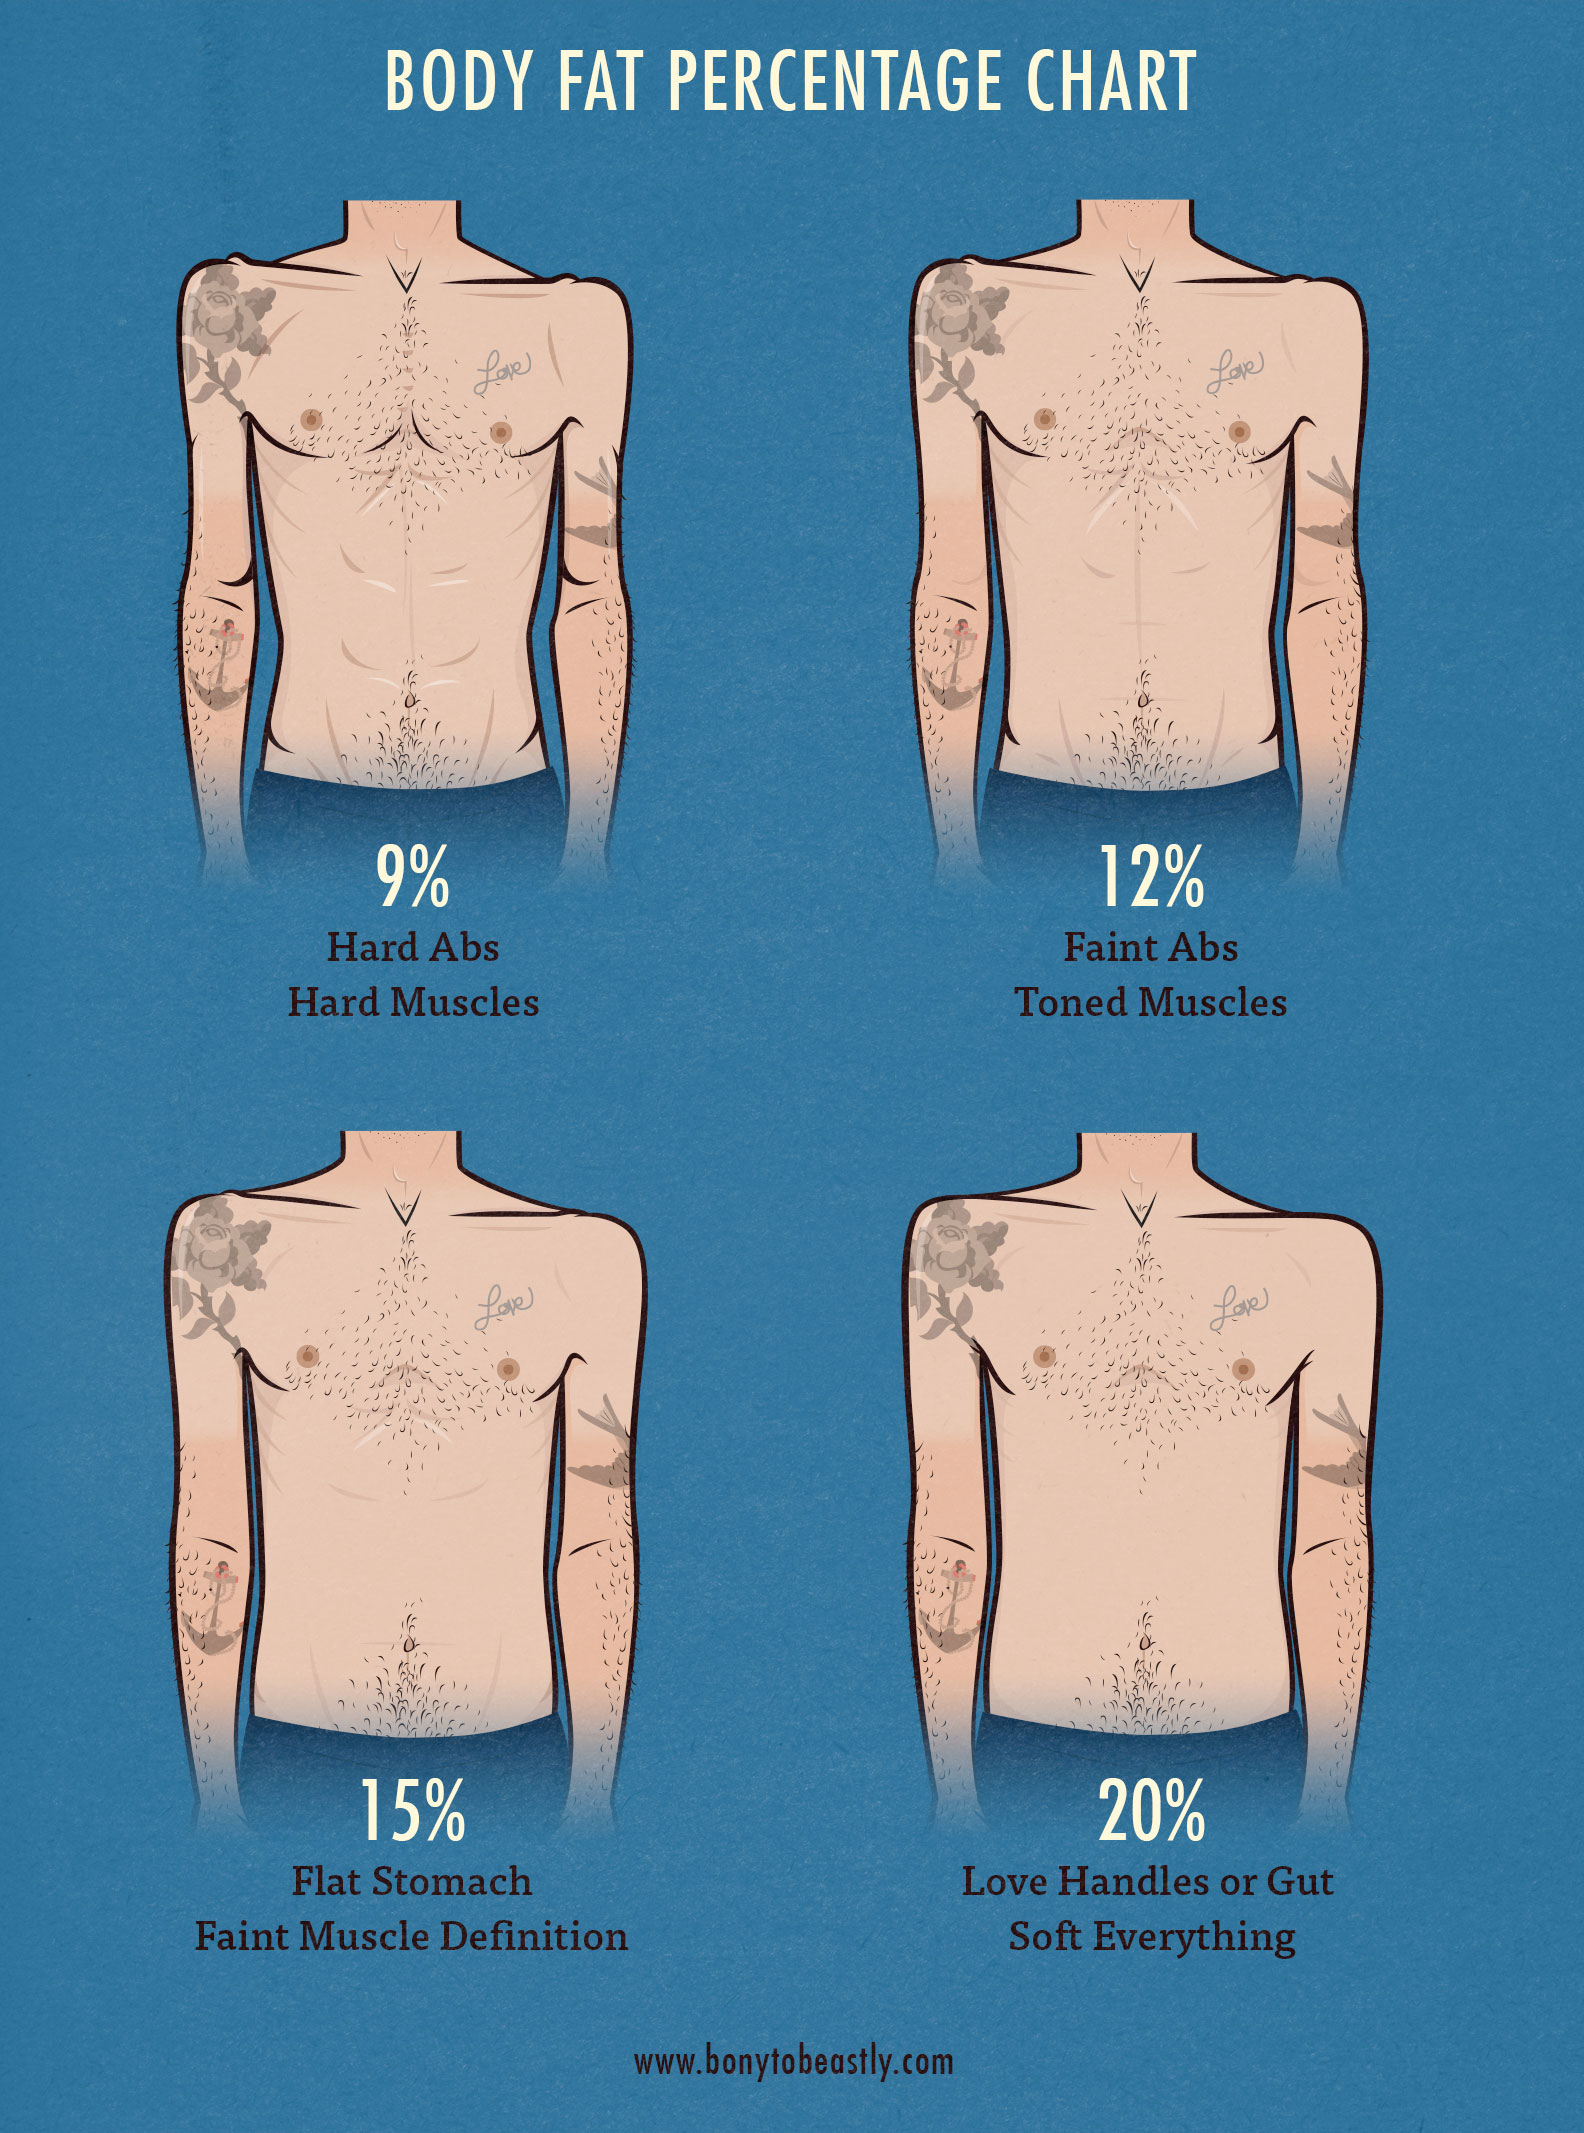 hight resolution of men s body fat percentage illustration chart bony to beastly